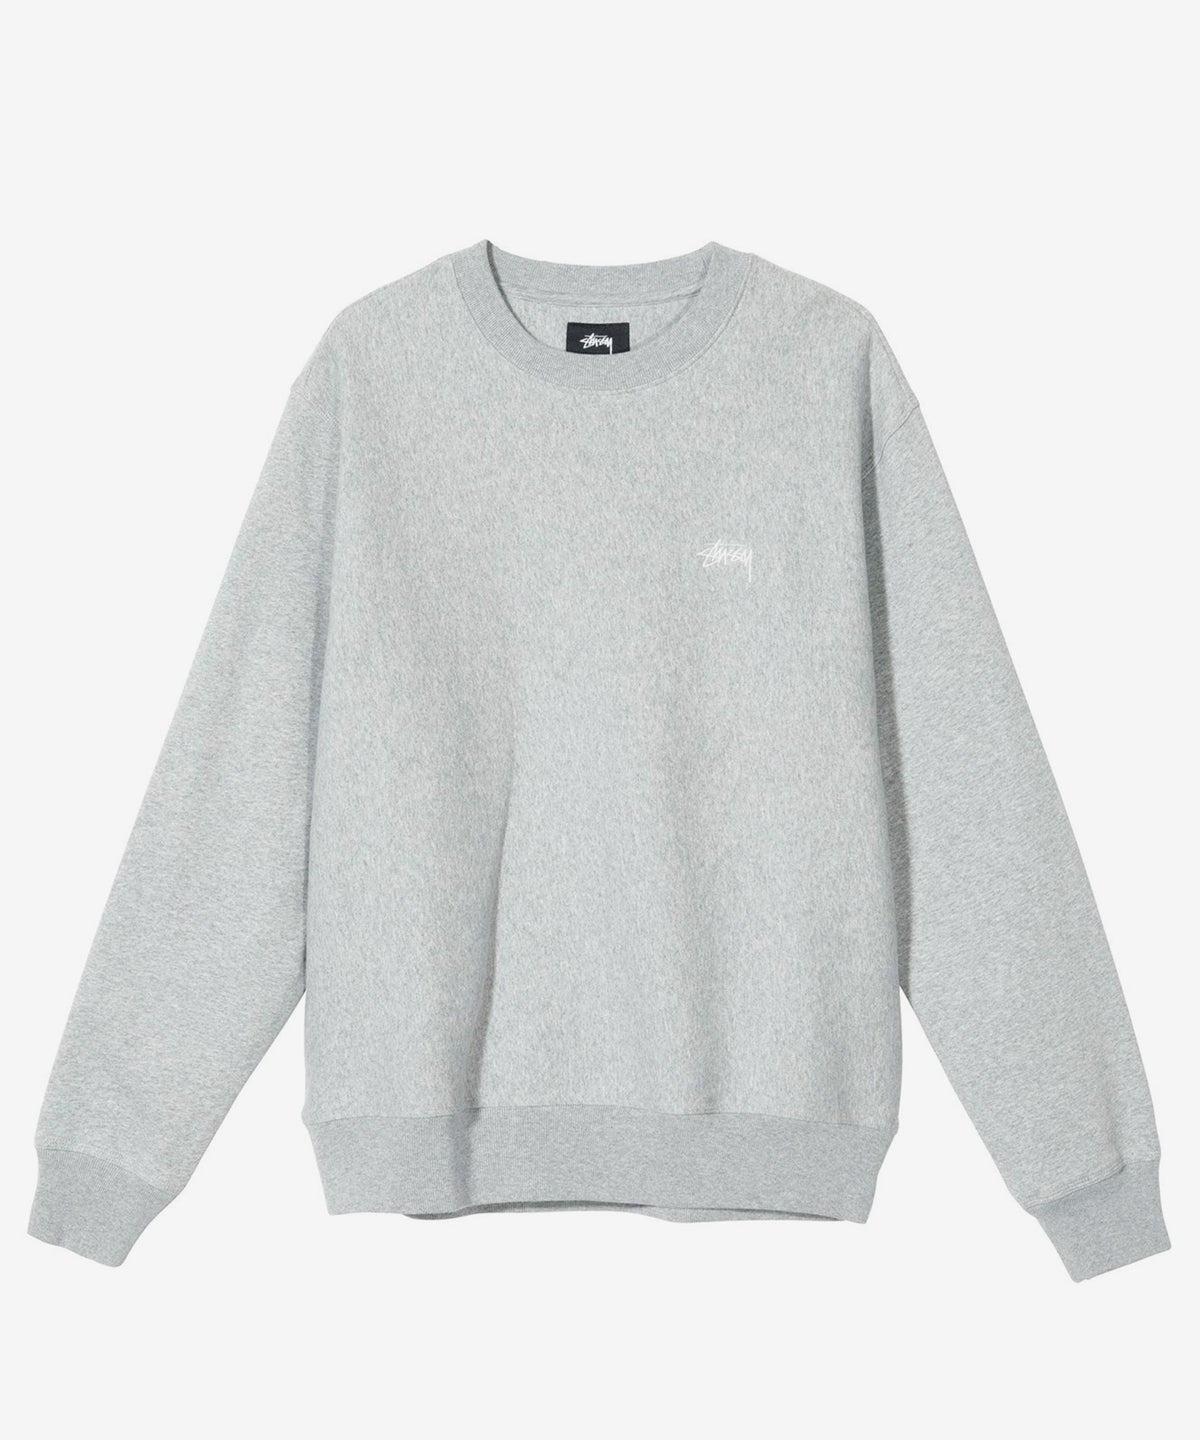 Image of STUSSY_STOCK LOGO CREWNECK :::HEATHER GREY:::